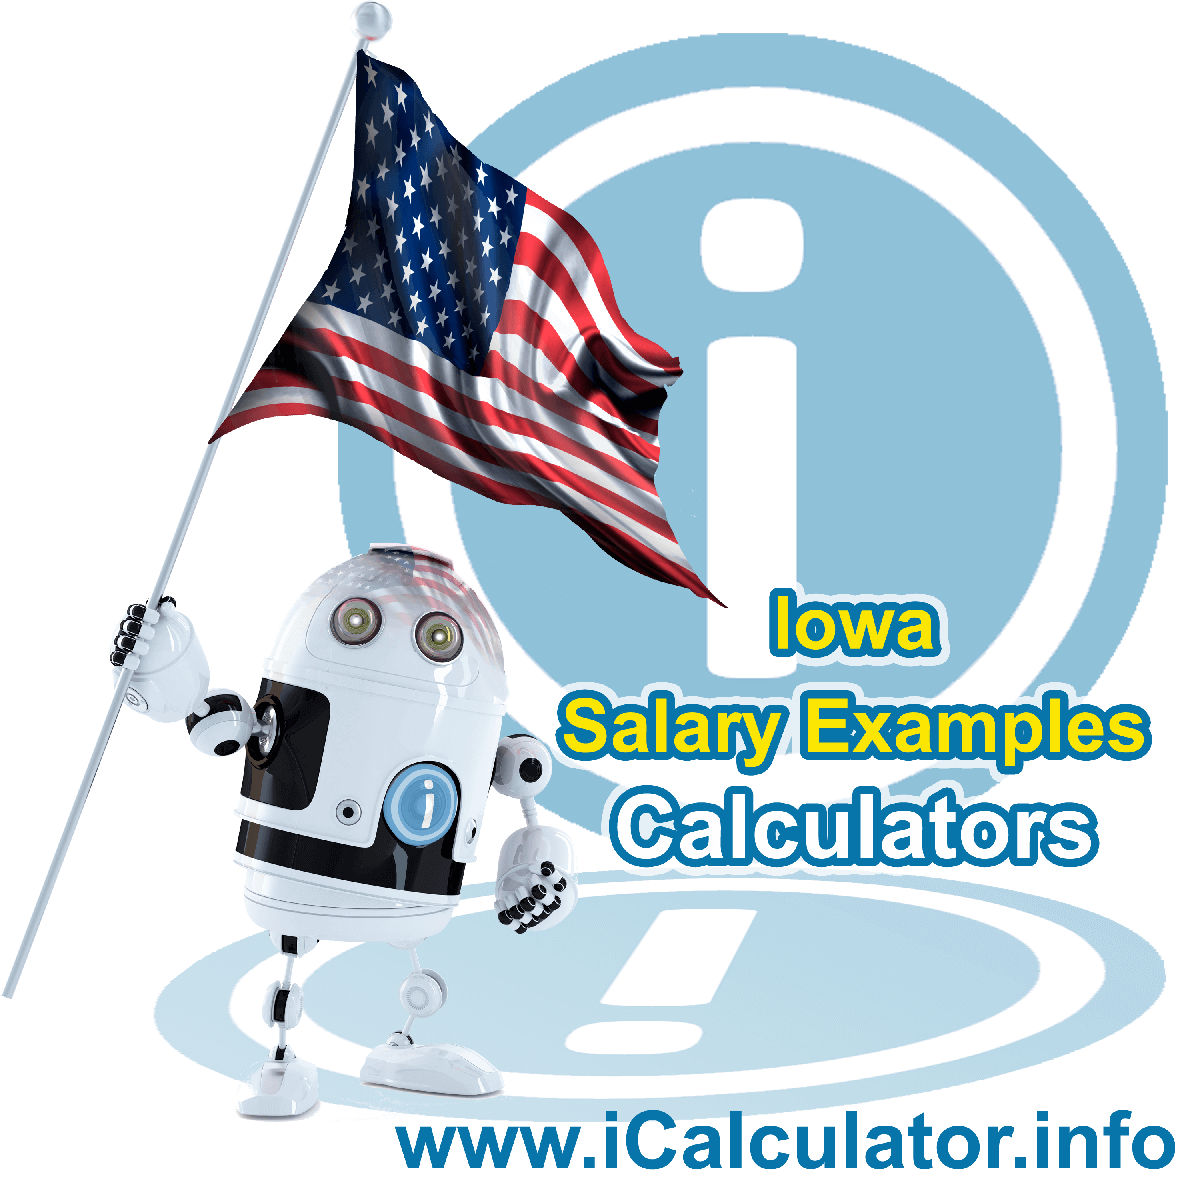 Iowa Salary Example for $130.00 in 2020 | iCalculator | $130.00 salary example for employee and employer paying Iowa State tincome taxes. Detailed salary after tax calculation including Iowa State Tax, Federal State Tax, Medicare Deductions, Social Security, Capital Gains and other income tax and salary deductions complete with supporting Iowa state tax tables